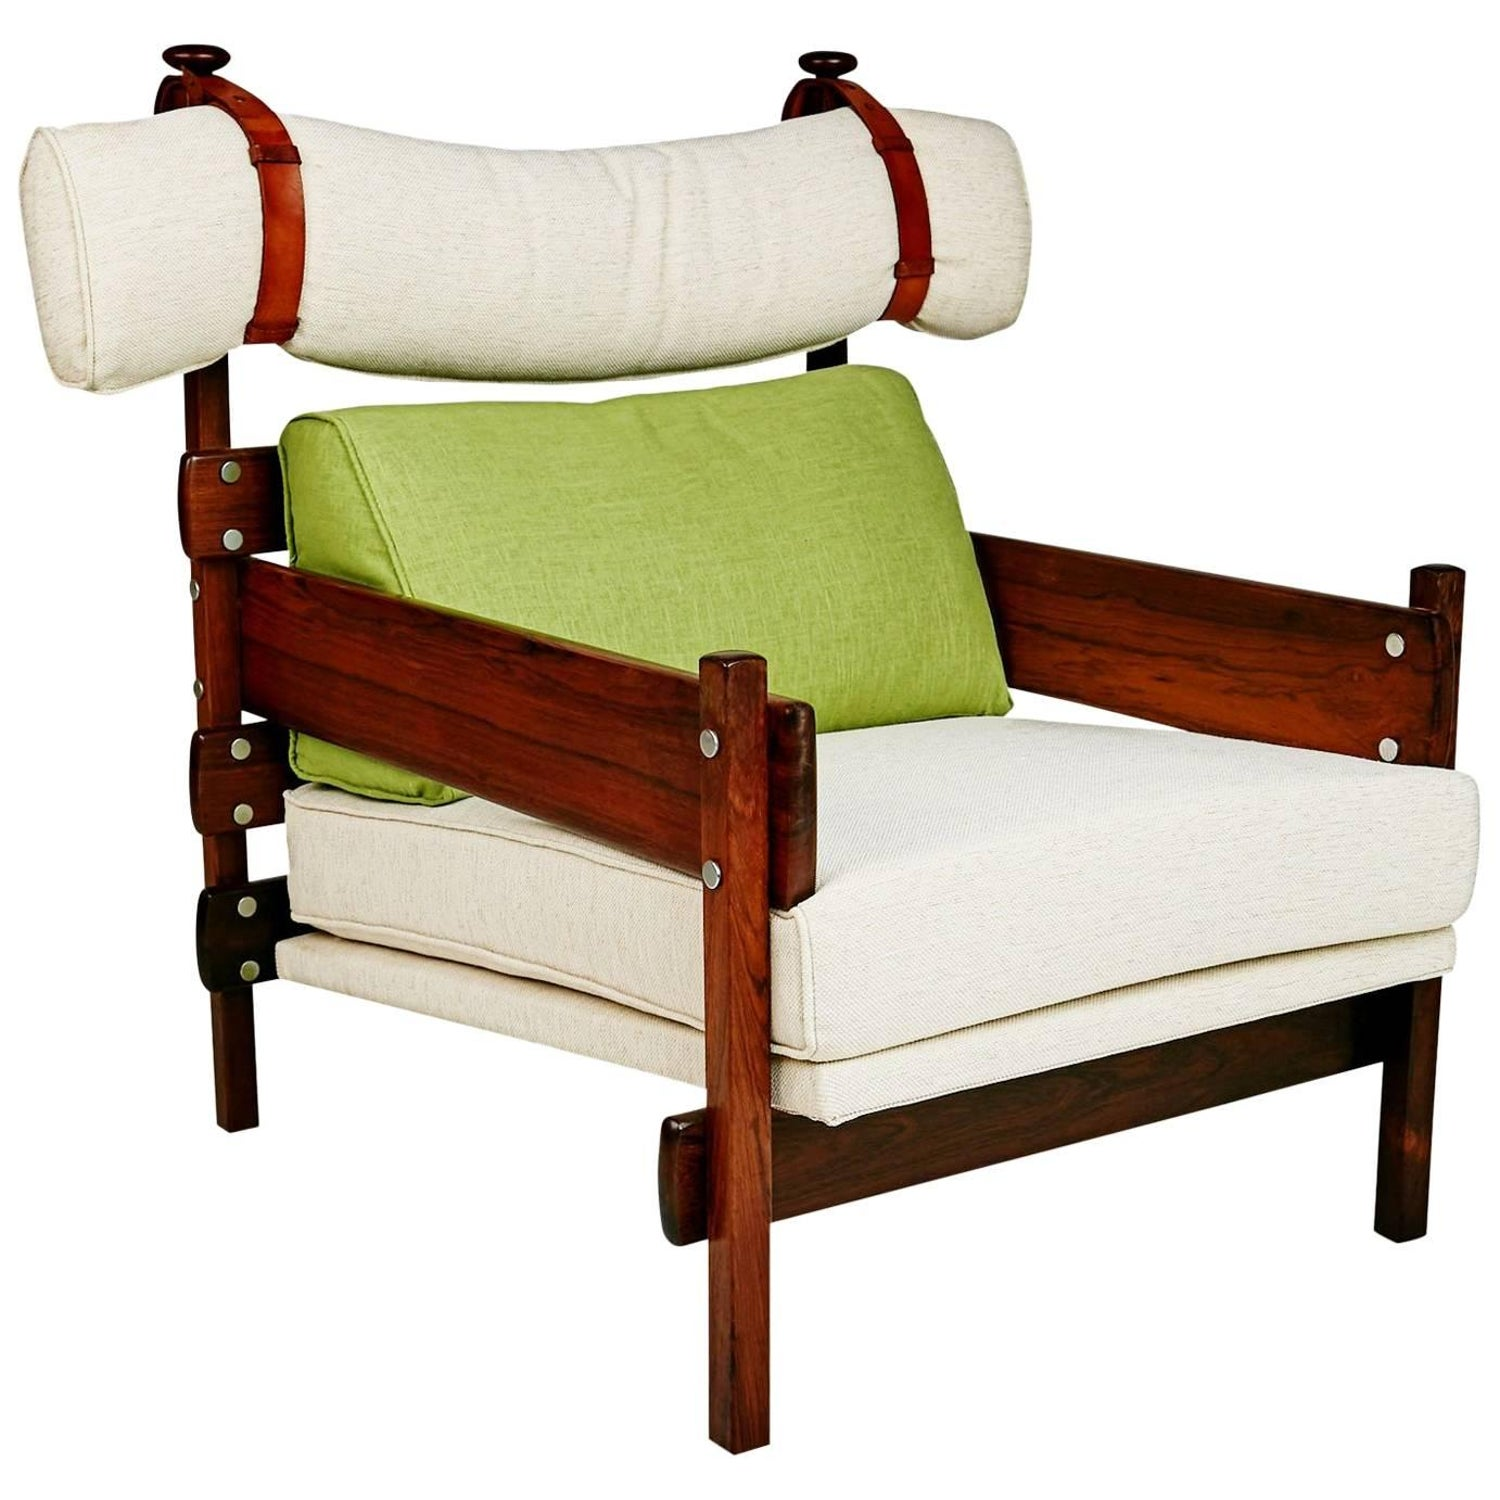 Sergio Rodrigues Furniture Mole & Sheriff Chairs Sofas & More